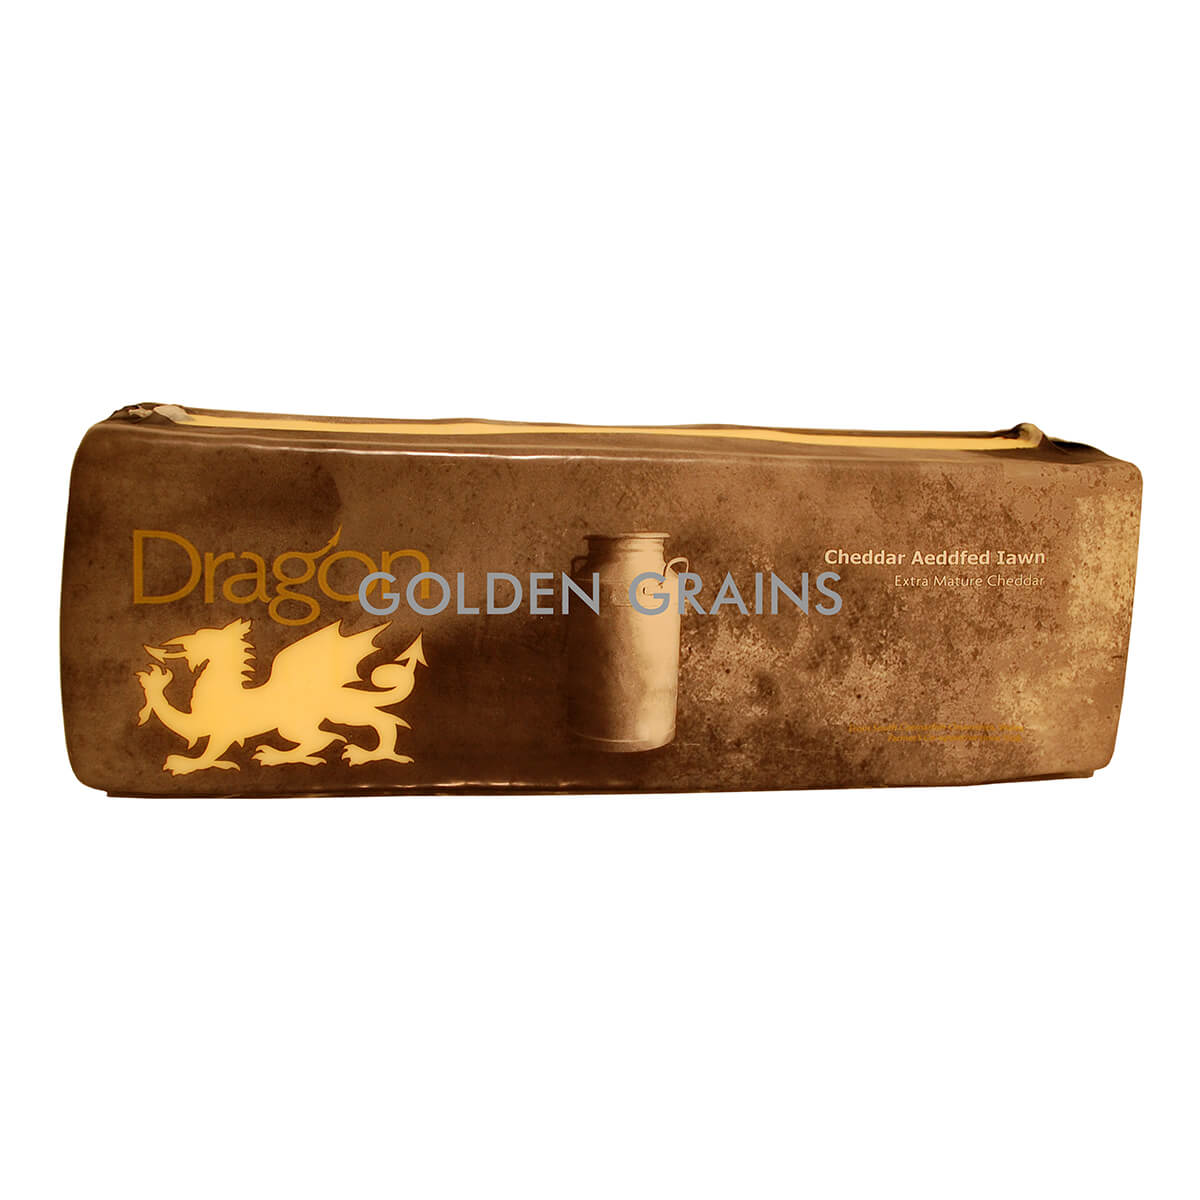 Golden Grains Dubai Export - Dragon - Vintage Cheddar.jpg